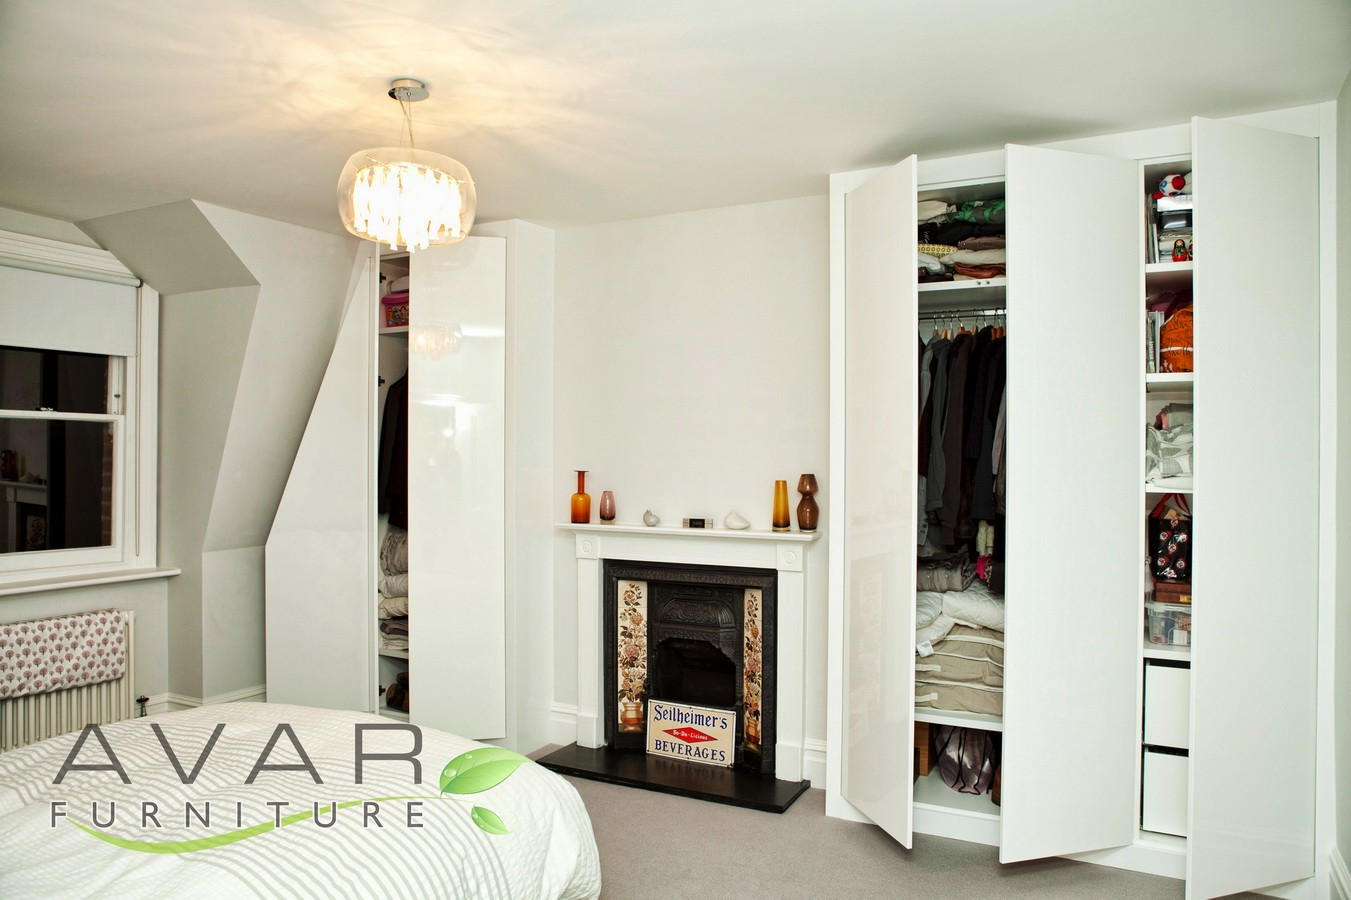 Fitted wardrobe ideas gallery 3 north london uk for Fitted bedroom ideas for small rooms